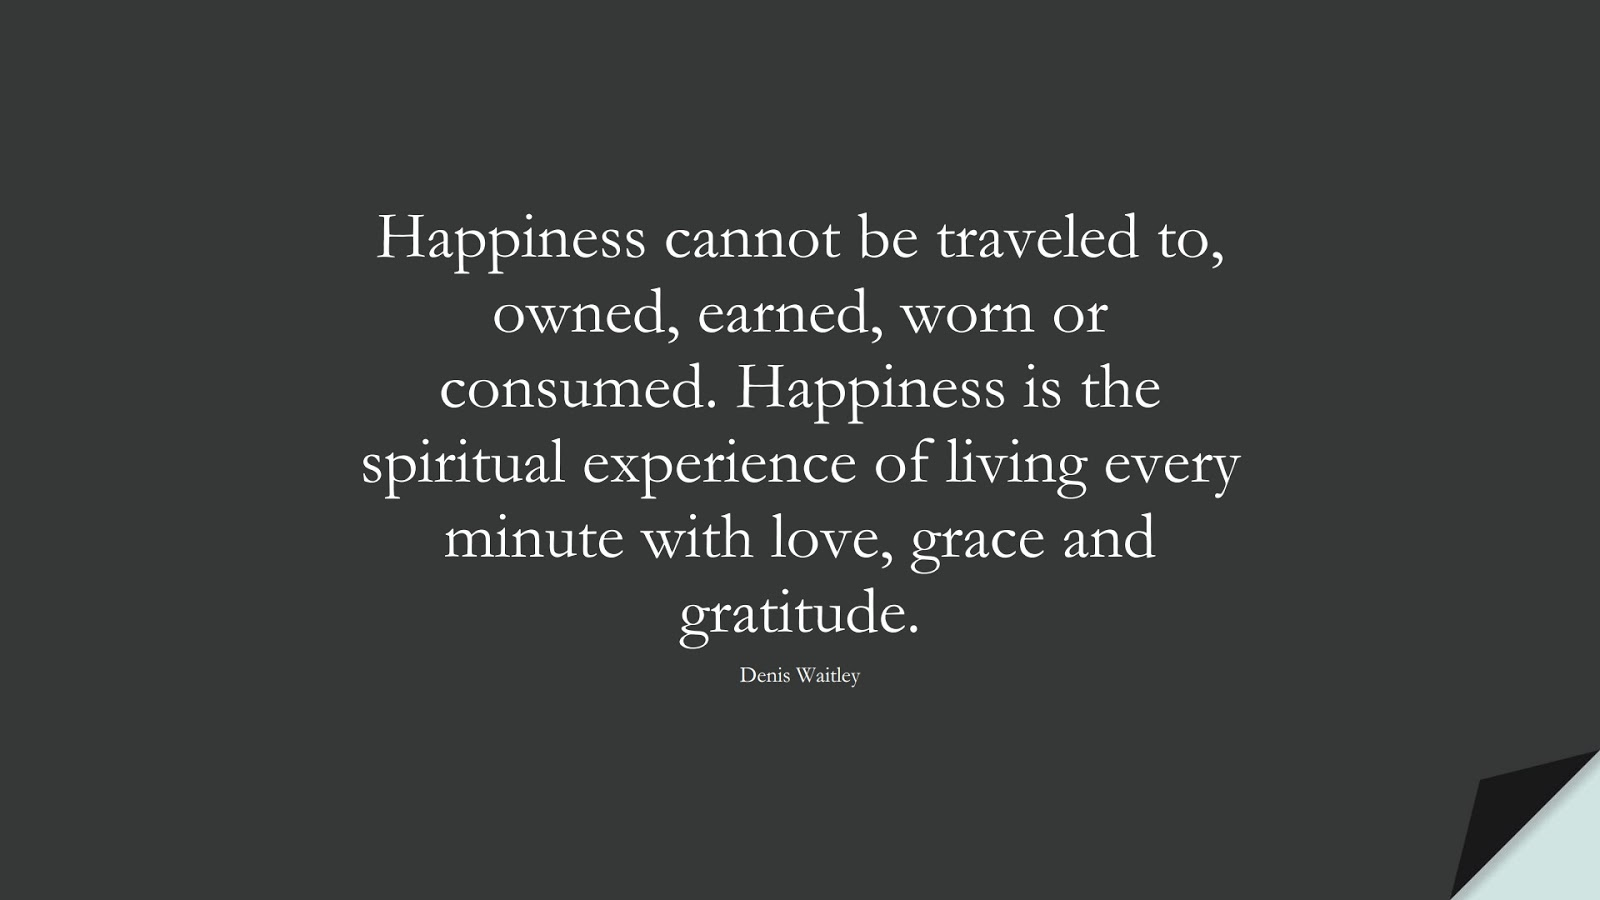 Happiness cannot be traveled to, owned, earned, worn or consumed. Happiness is the spiritual experience of living every minute with love, grace and gratitude. (Denis Waitley);  #LoveQuotes